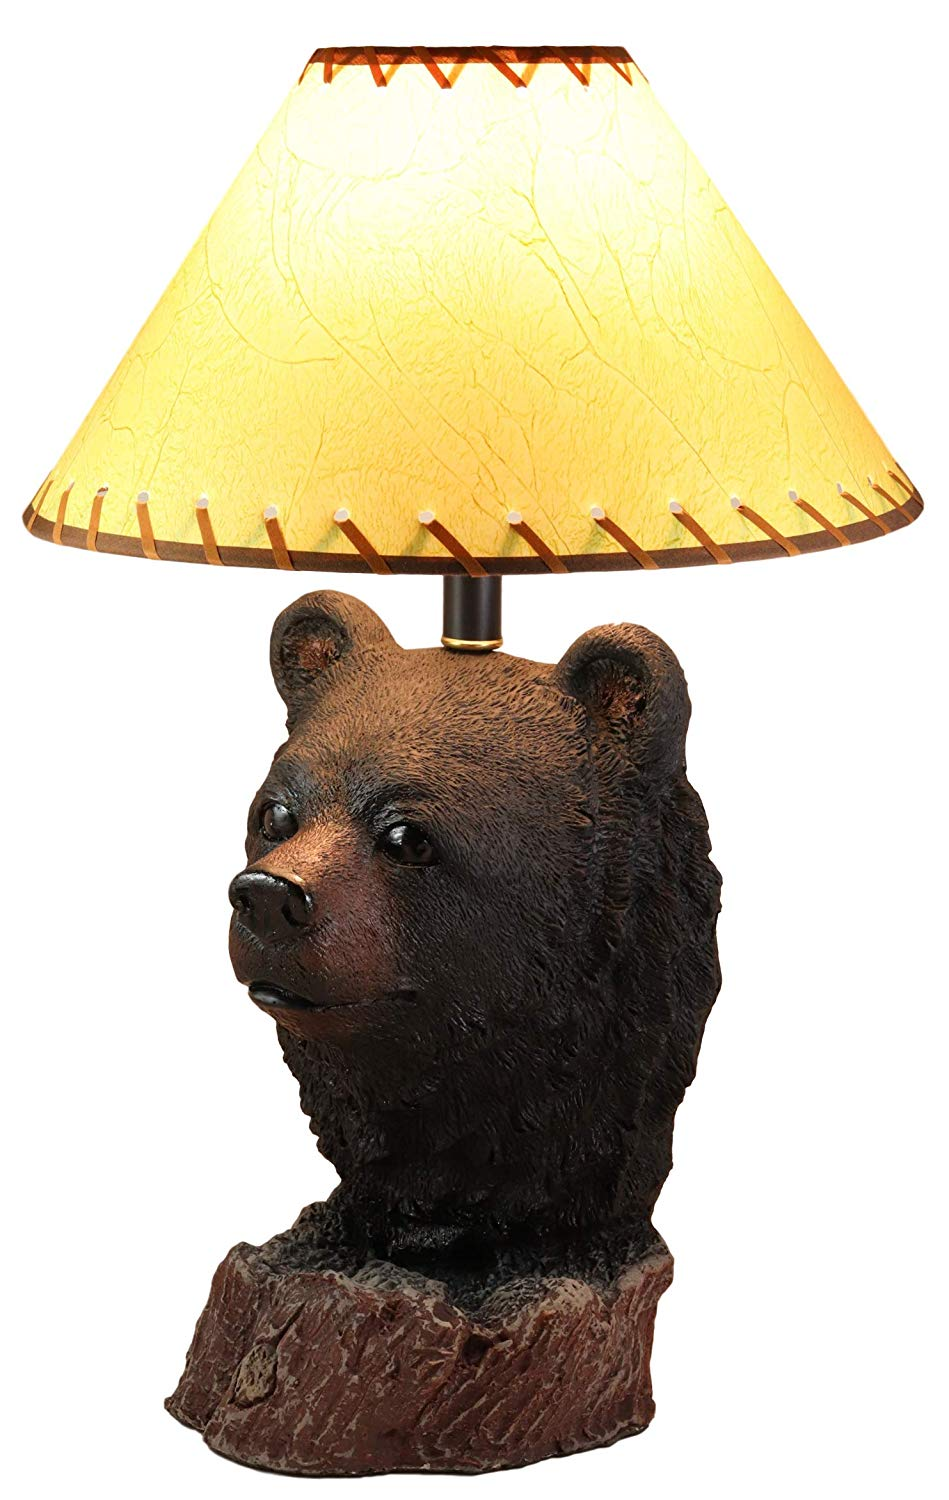 Ebros Woodland Rustic Cabin Lodge Decor Mountain Black Bear Head Bust Table Lamp Statue With Shade 23 High Forest Bears Bedside Desktop Lamps Vintage Design Home Accent Walmart Com Walmart Com